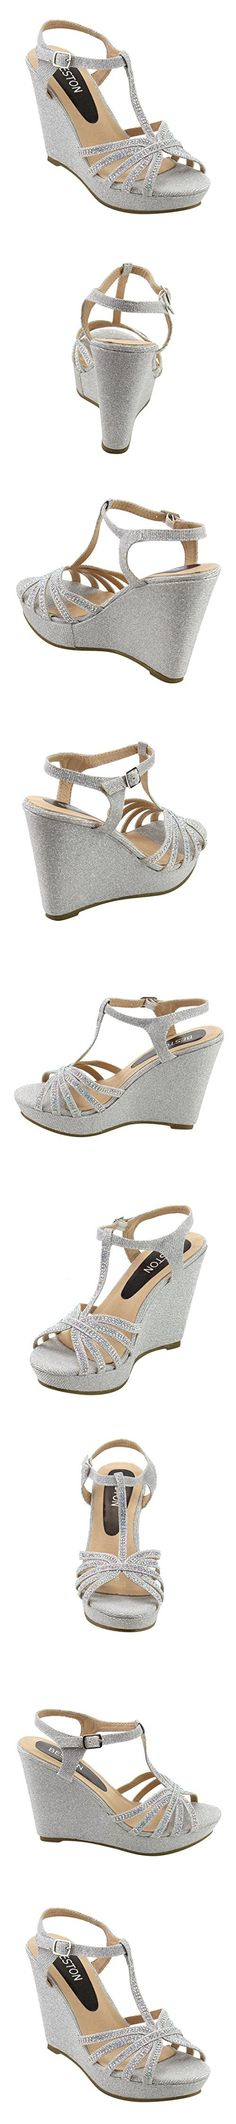 Beston ID68 Women's Glitter T-strap Cage Platform Wedge Dress Sandal, Color:SILVER, Size:7.5